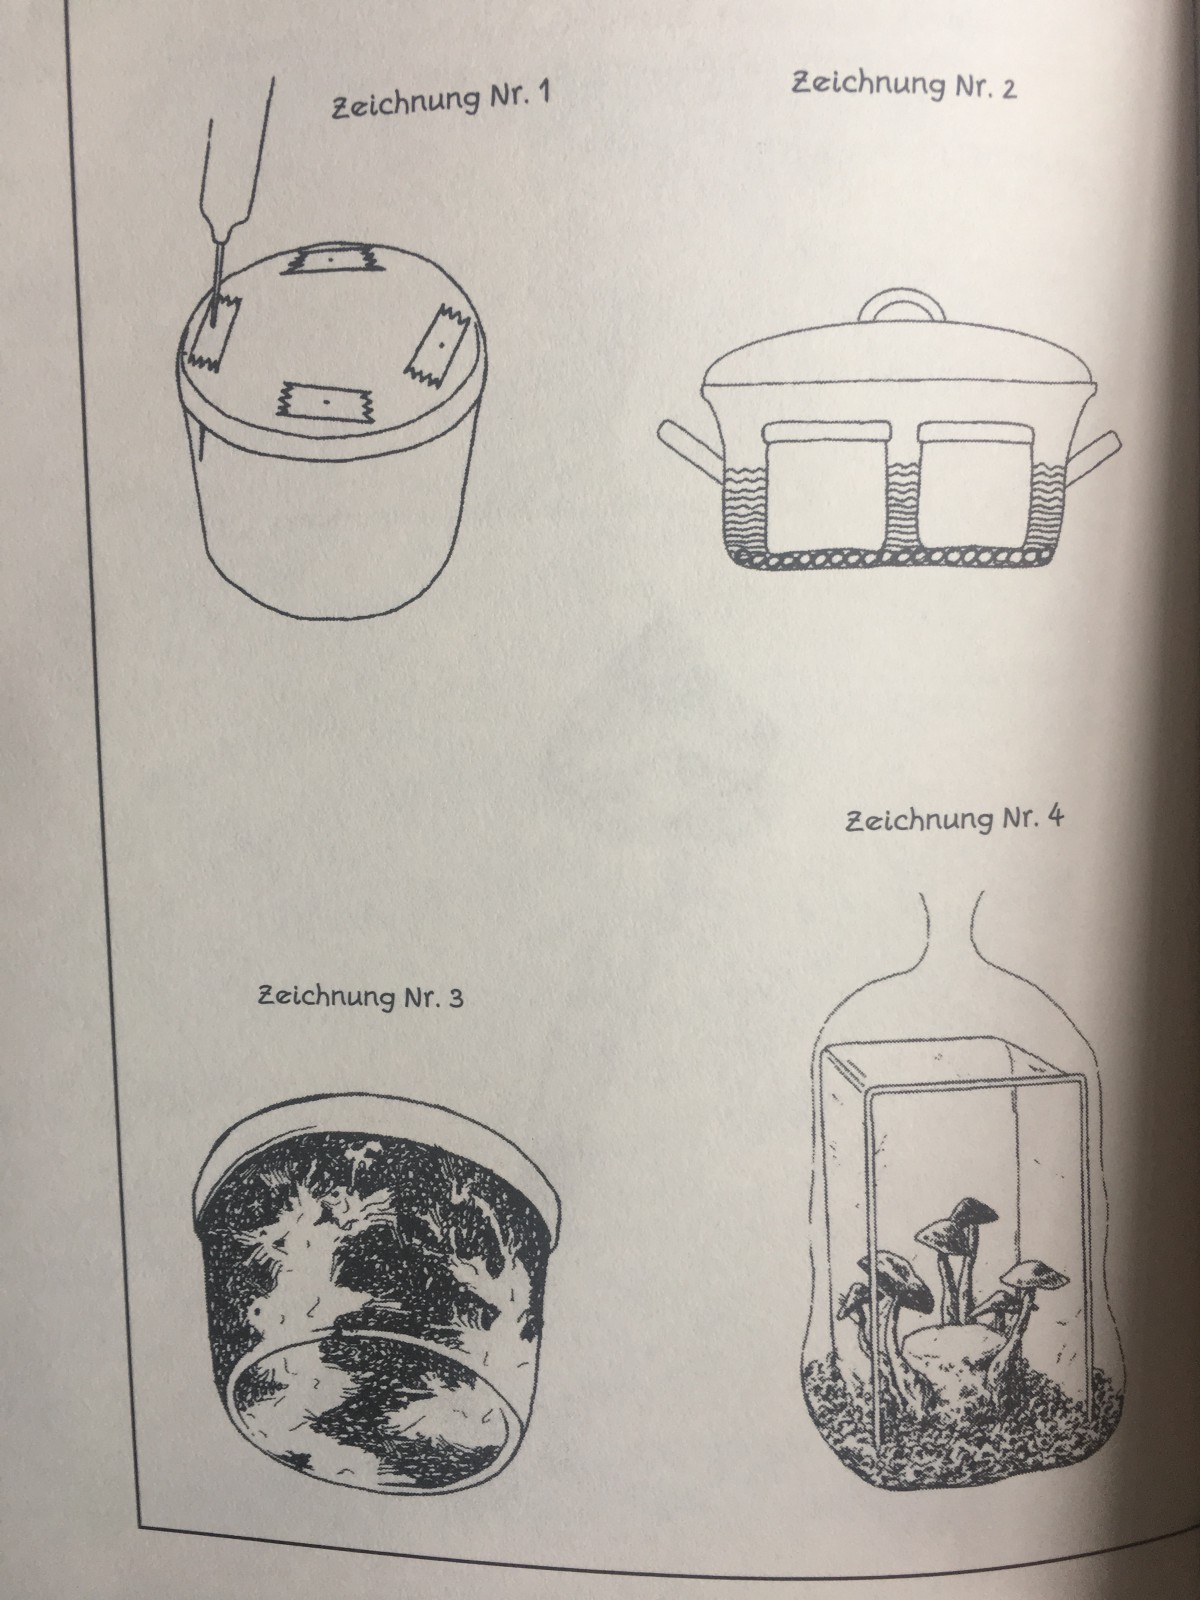 How To Grow Your Own Psychedelic Mushrooms Ayahuasca Community Diagram Of The Germinating Process Last Two Drawingsin Box Make Sure That Temperature Wont Exceed 30 Degree Celsius As Soon Shrooms Start Get Wrinkled Remove Vermikulit